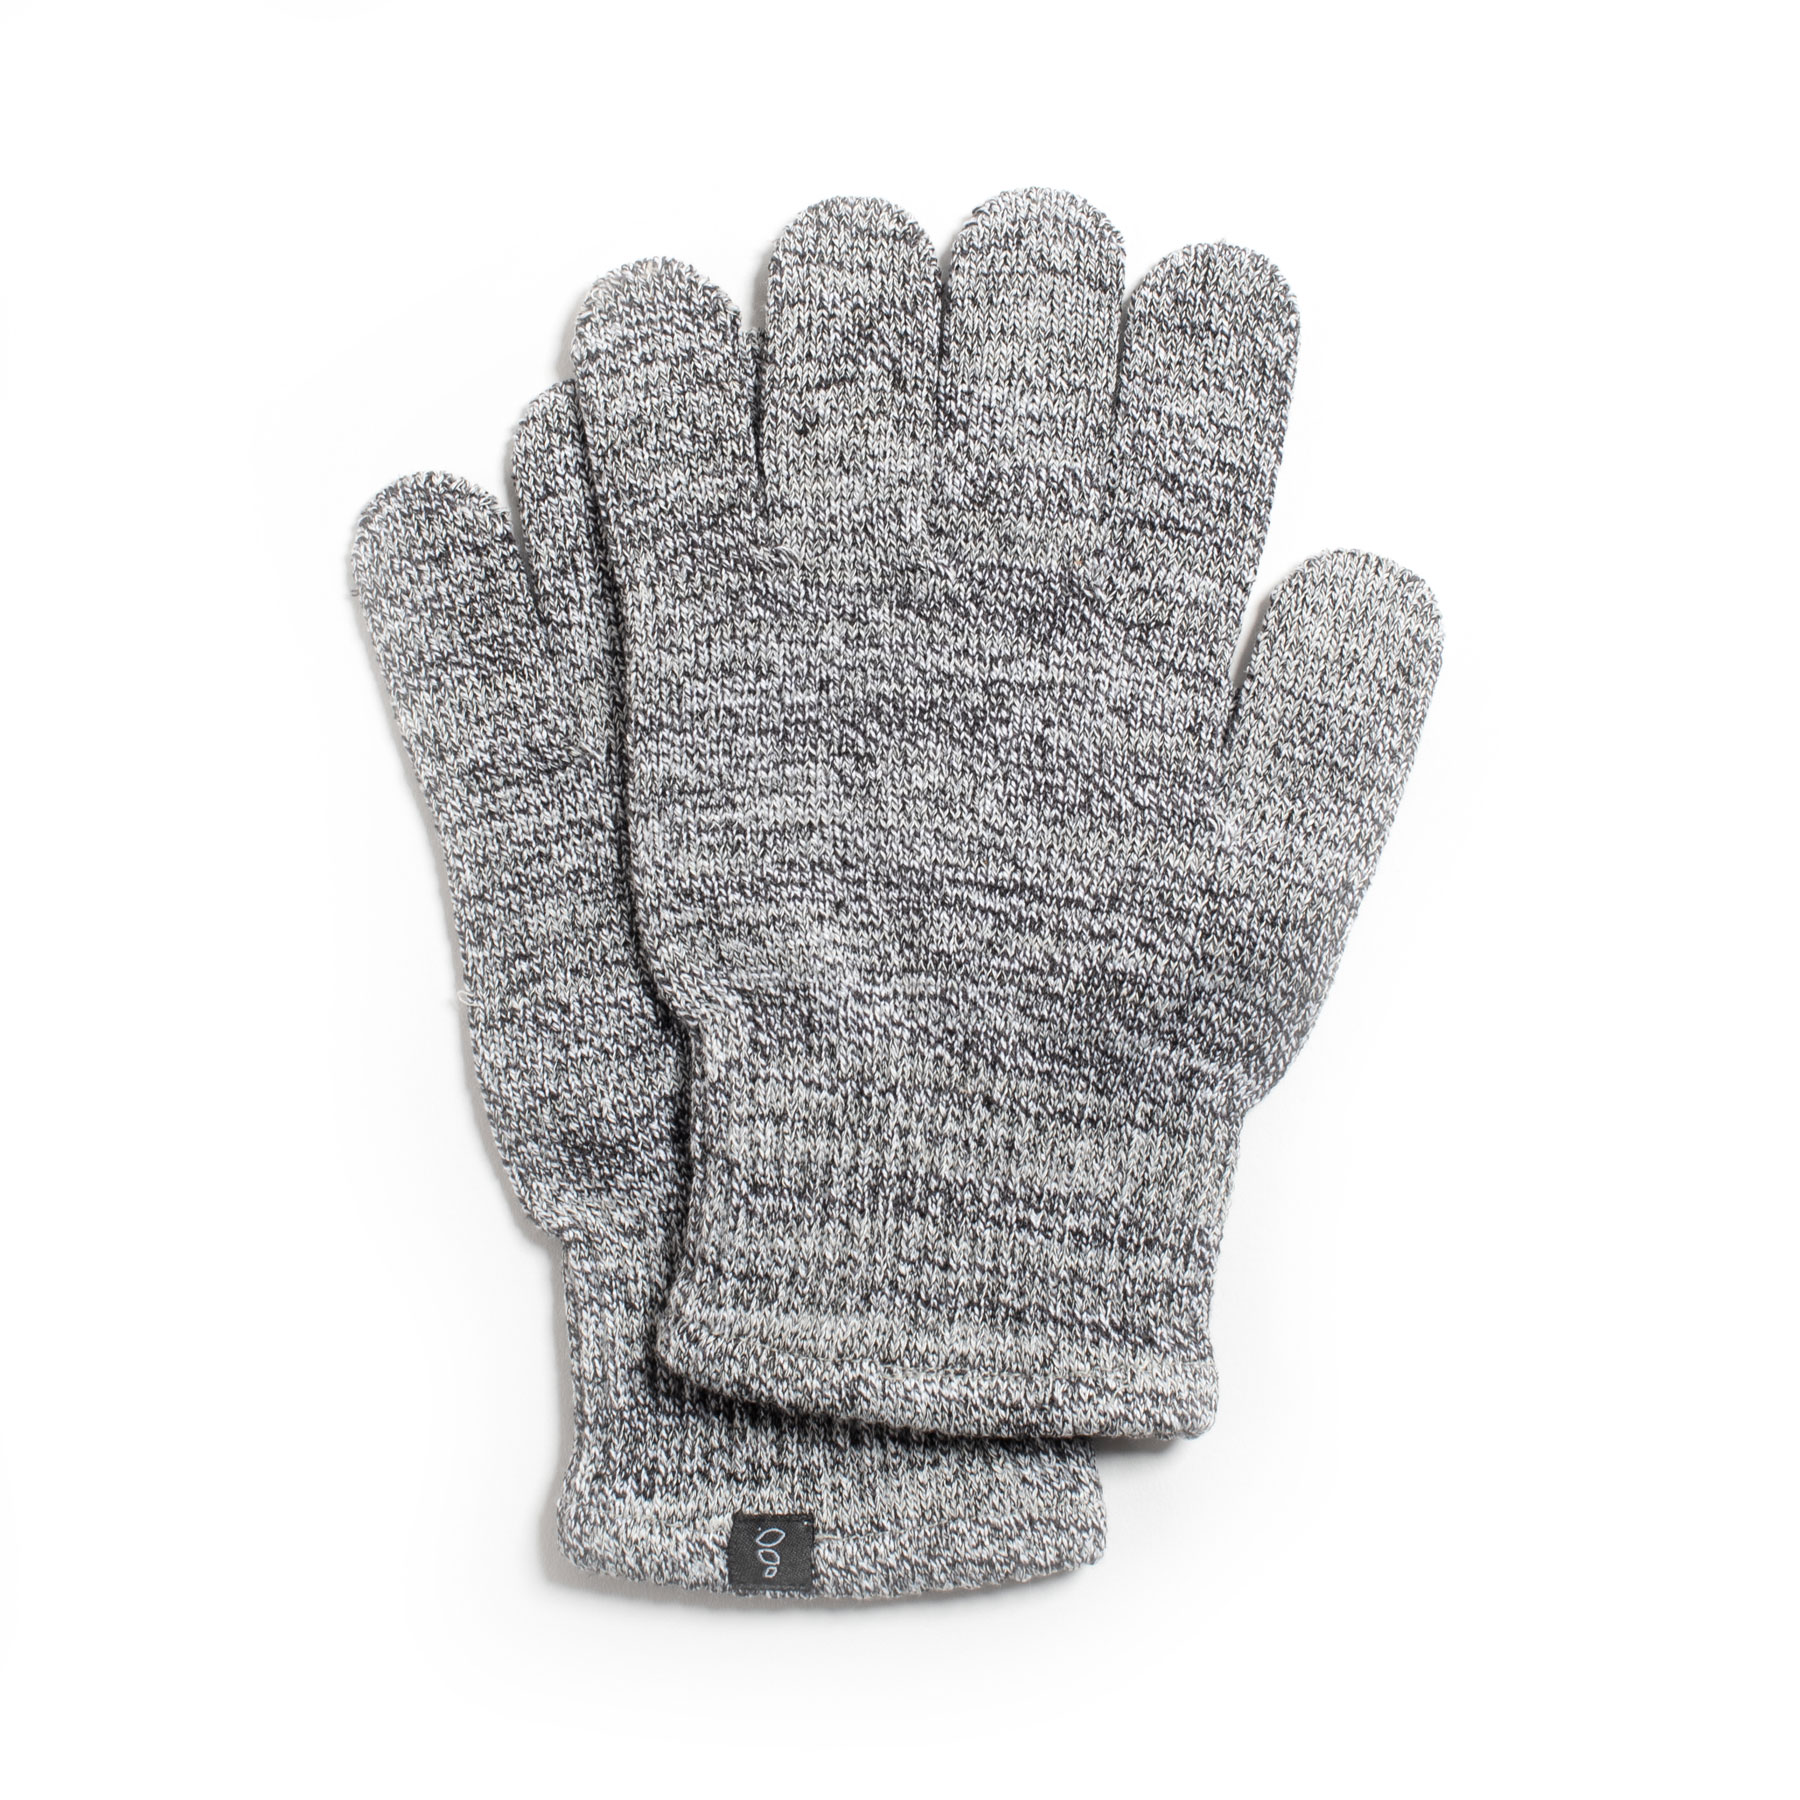 Cleverest Items 2020 - Grove Co. Antimicrobial Reusable Gloves